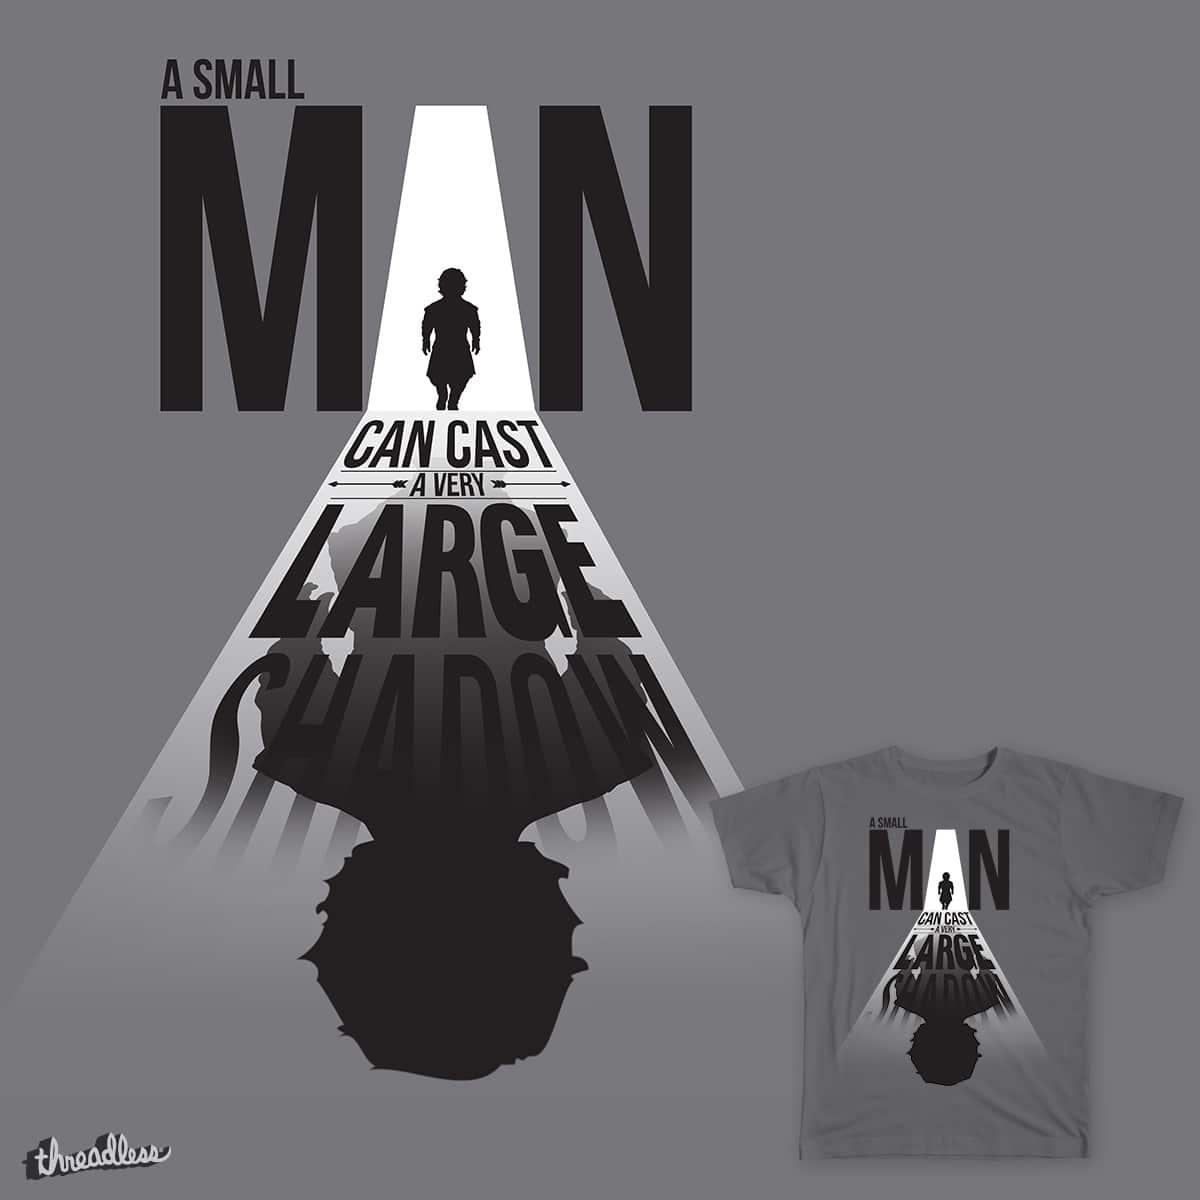 A Small Man's Shadow by Pendra on Threadless